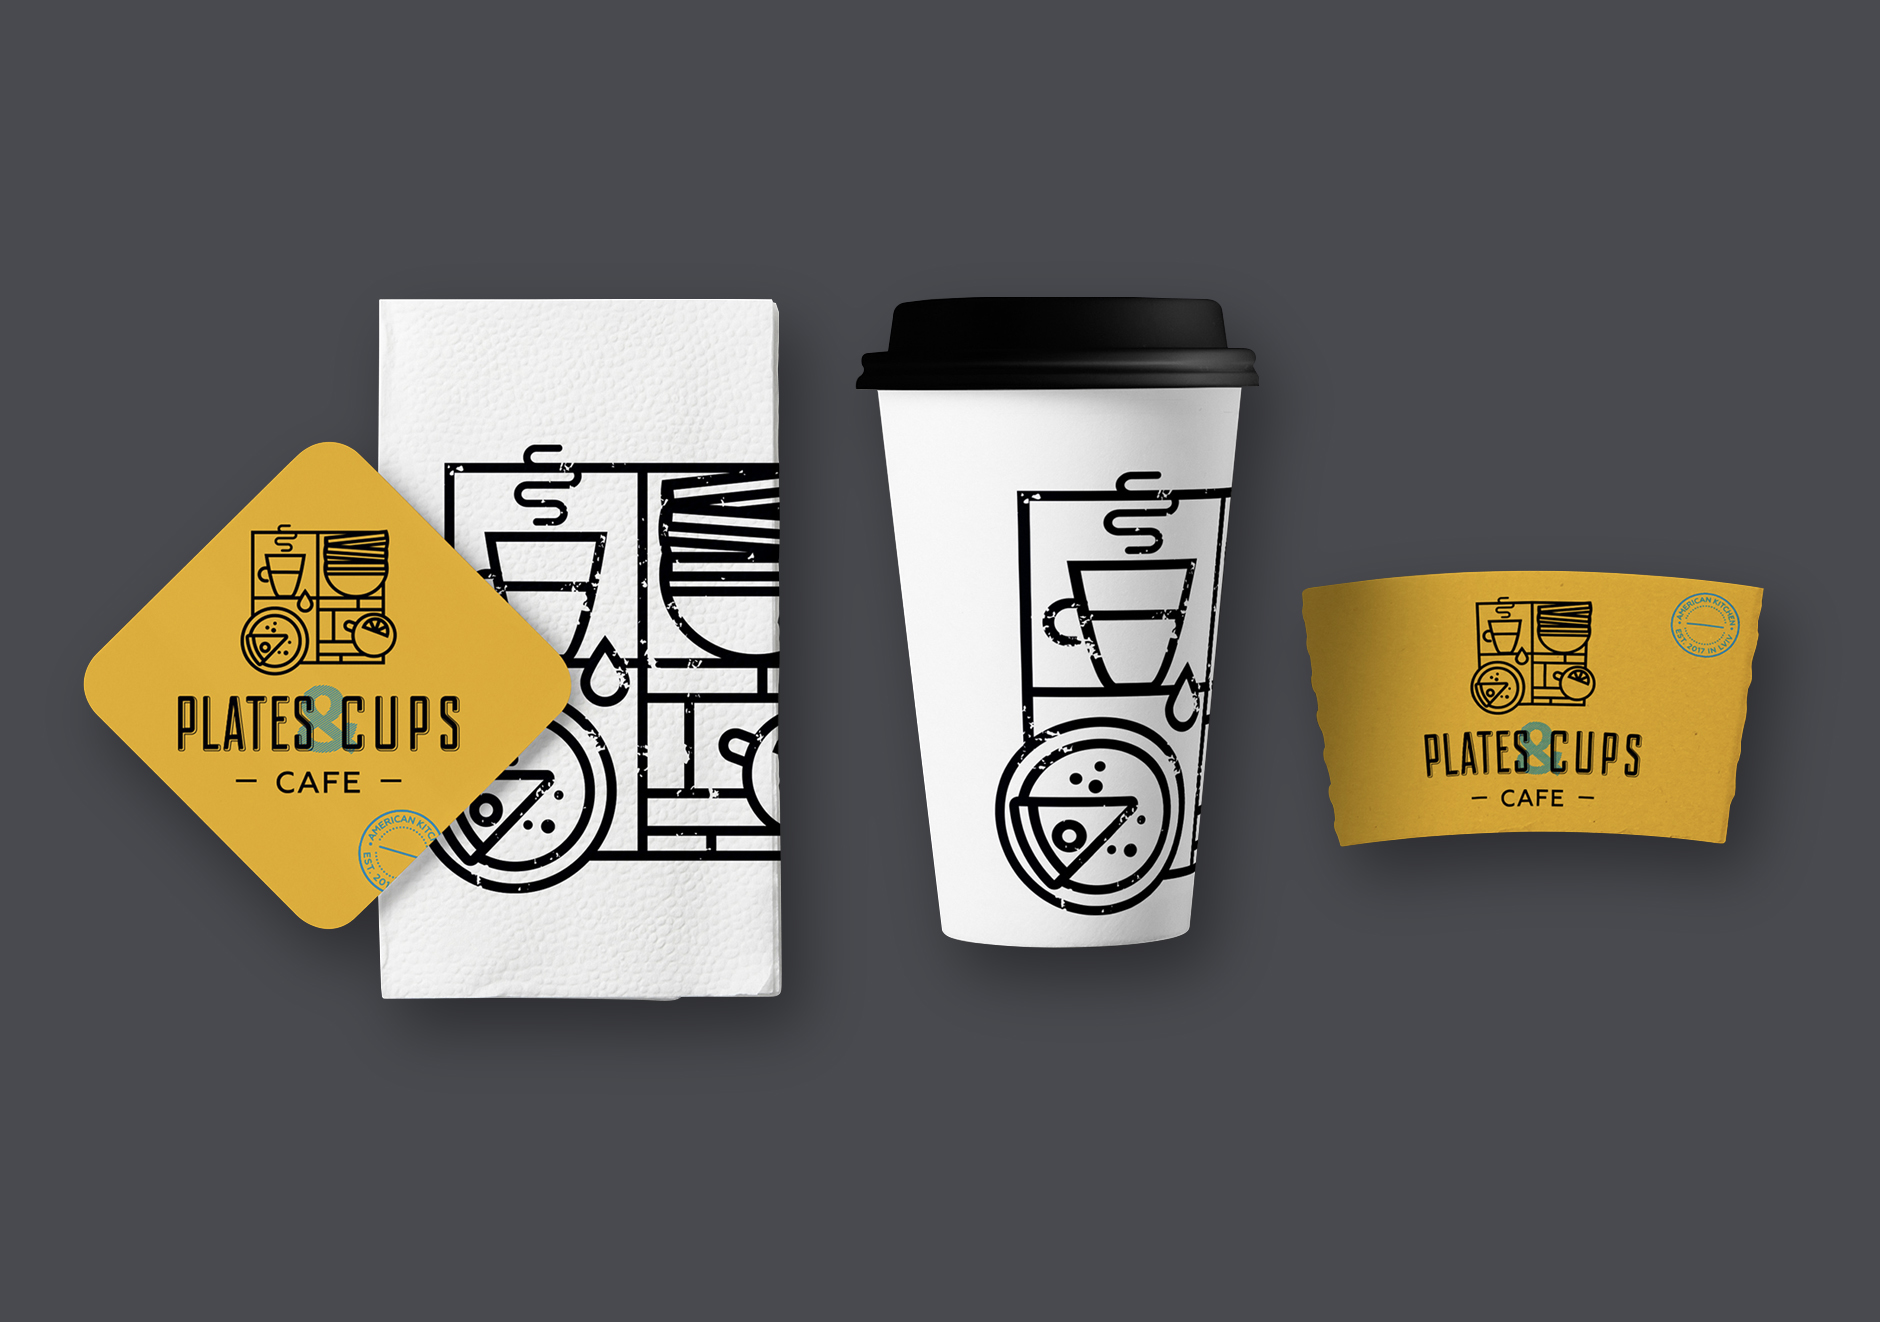 plates and cups cafe